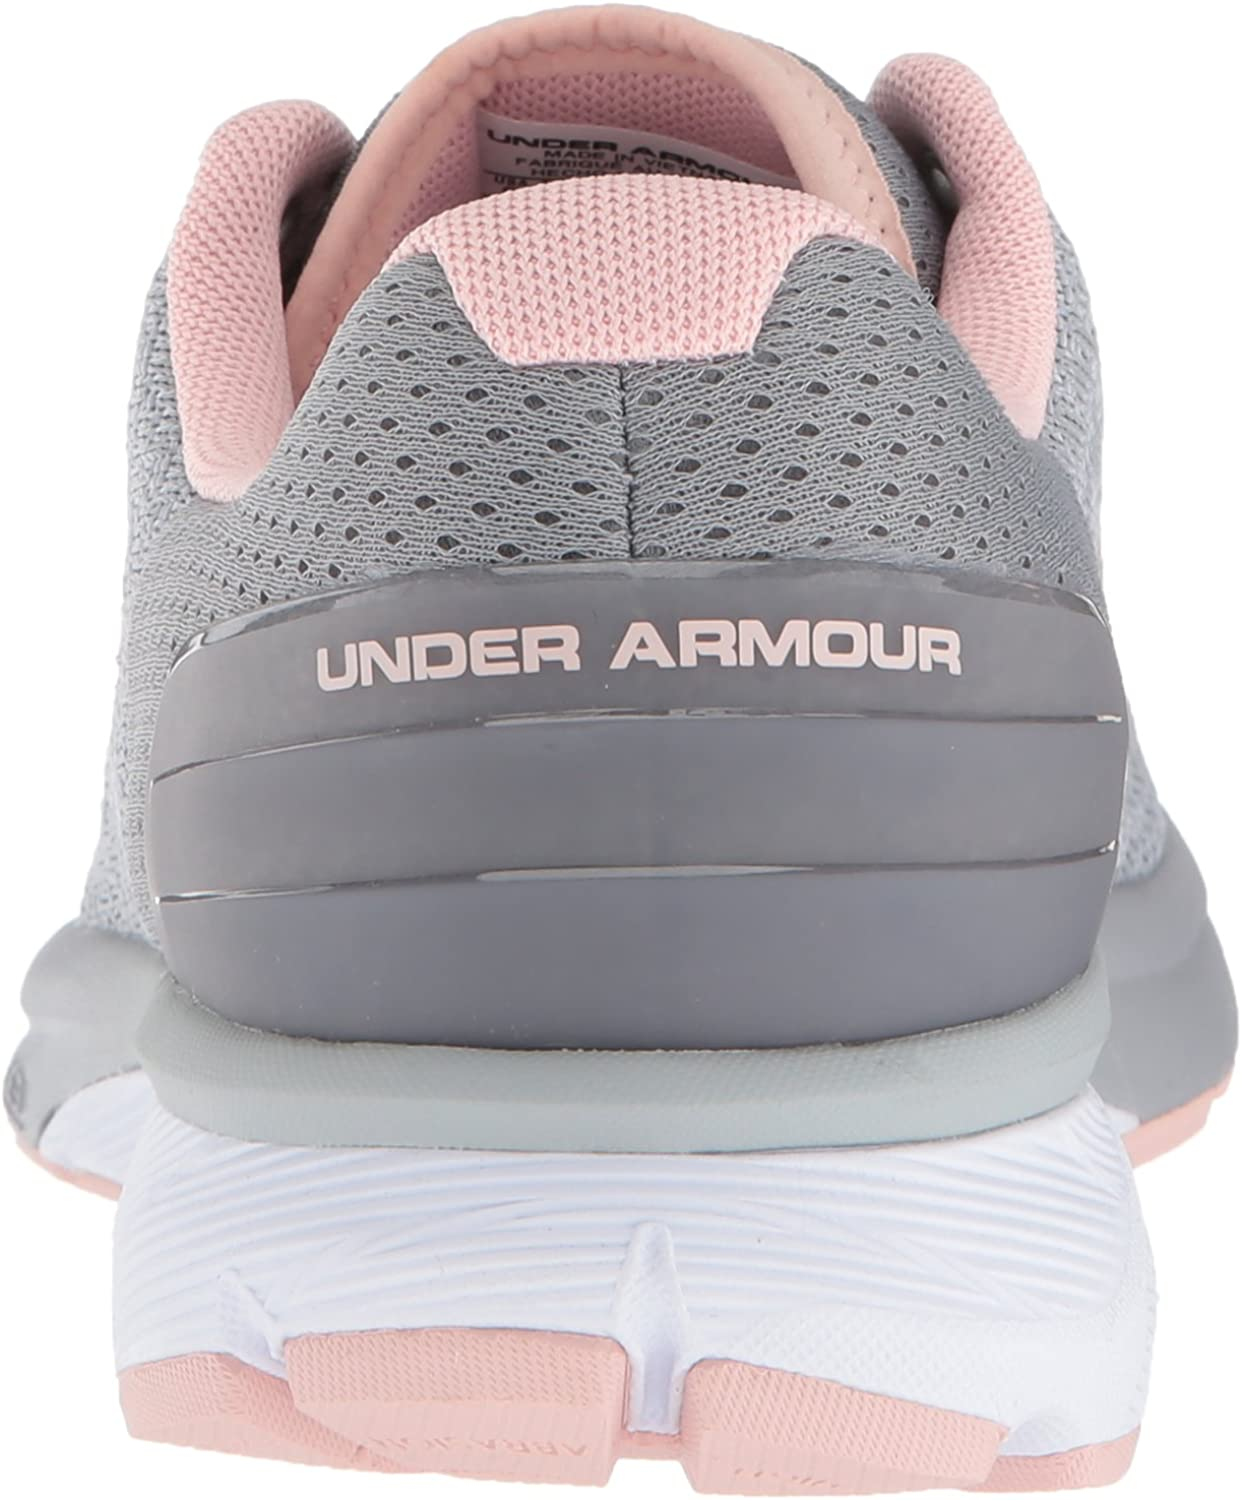 Under Armour Women\'s Charged Escape 2 Running Shoes, Scarpe da Corsa Donna Grigio